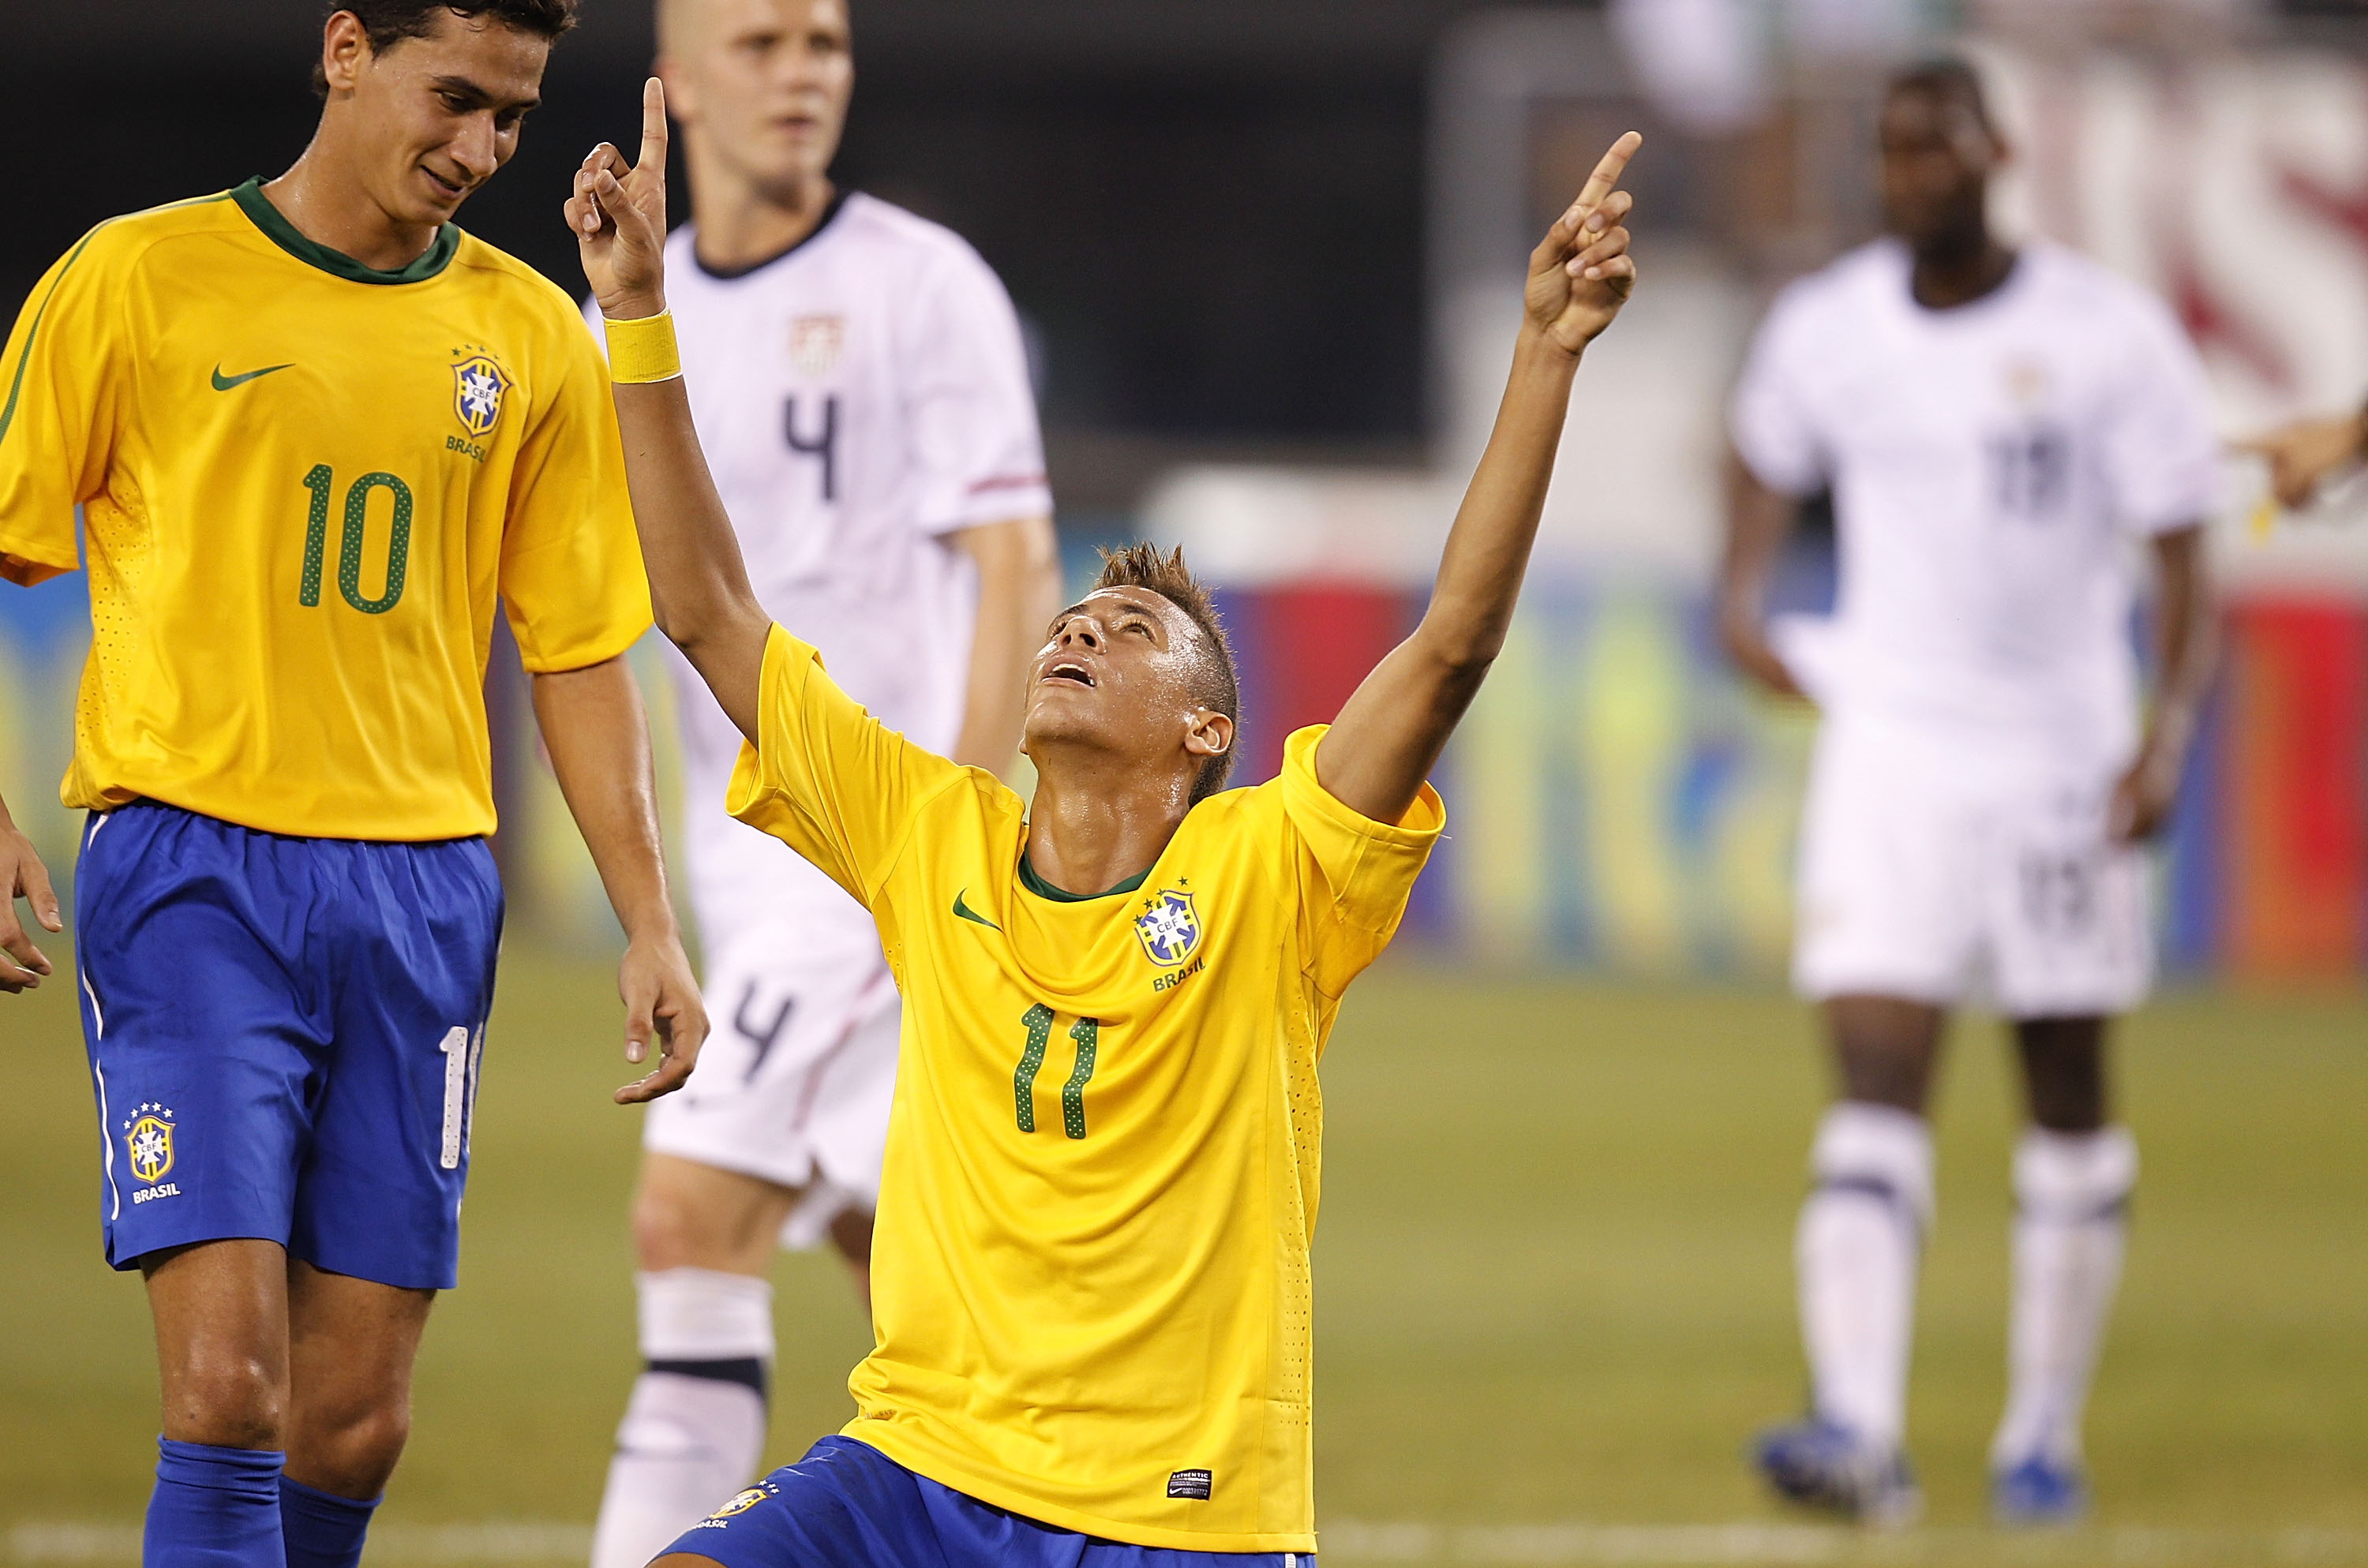 Half goals give Brazil comfortable 2-0 win over U.S.